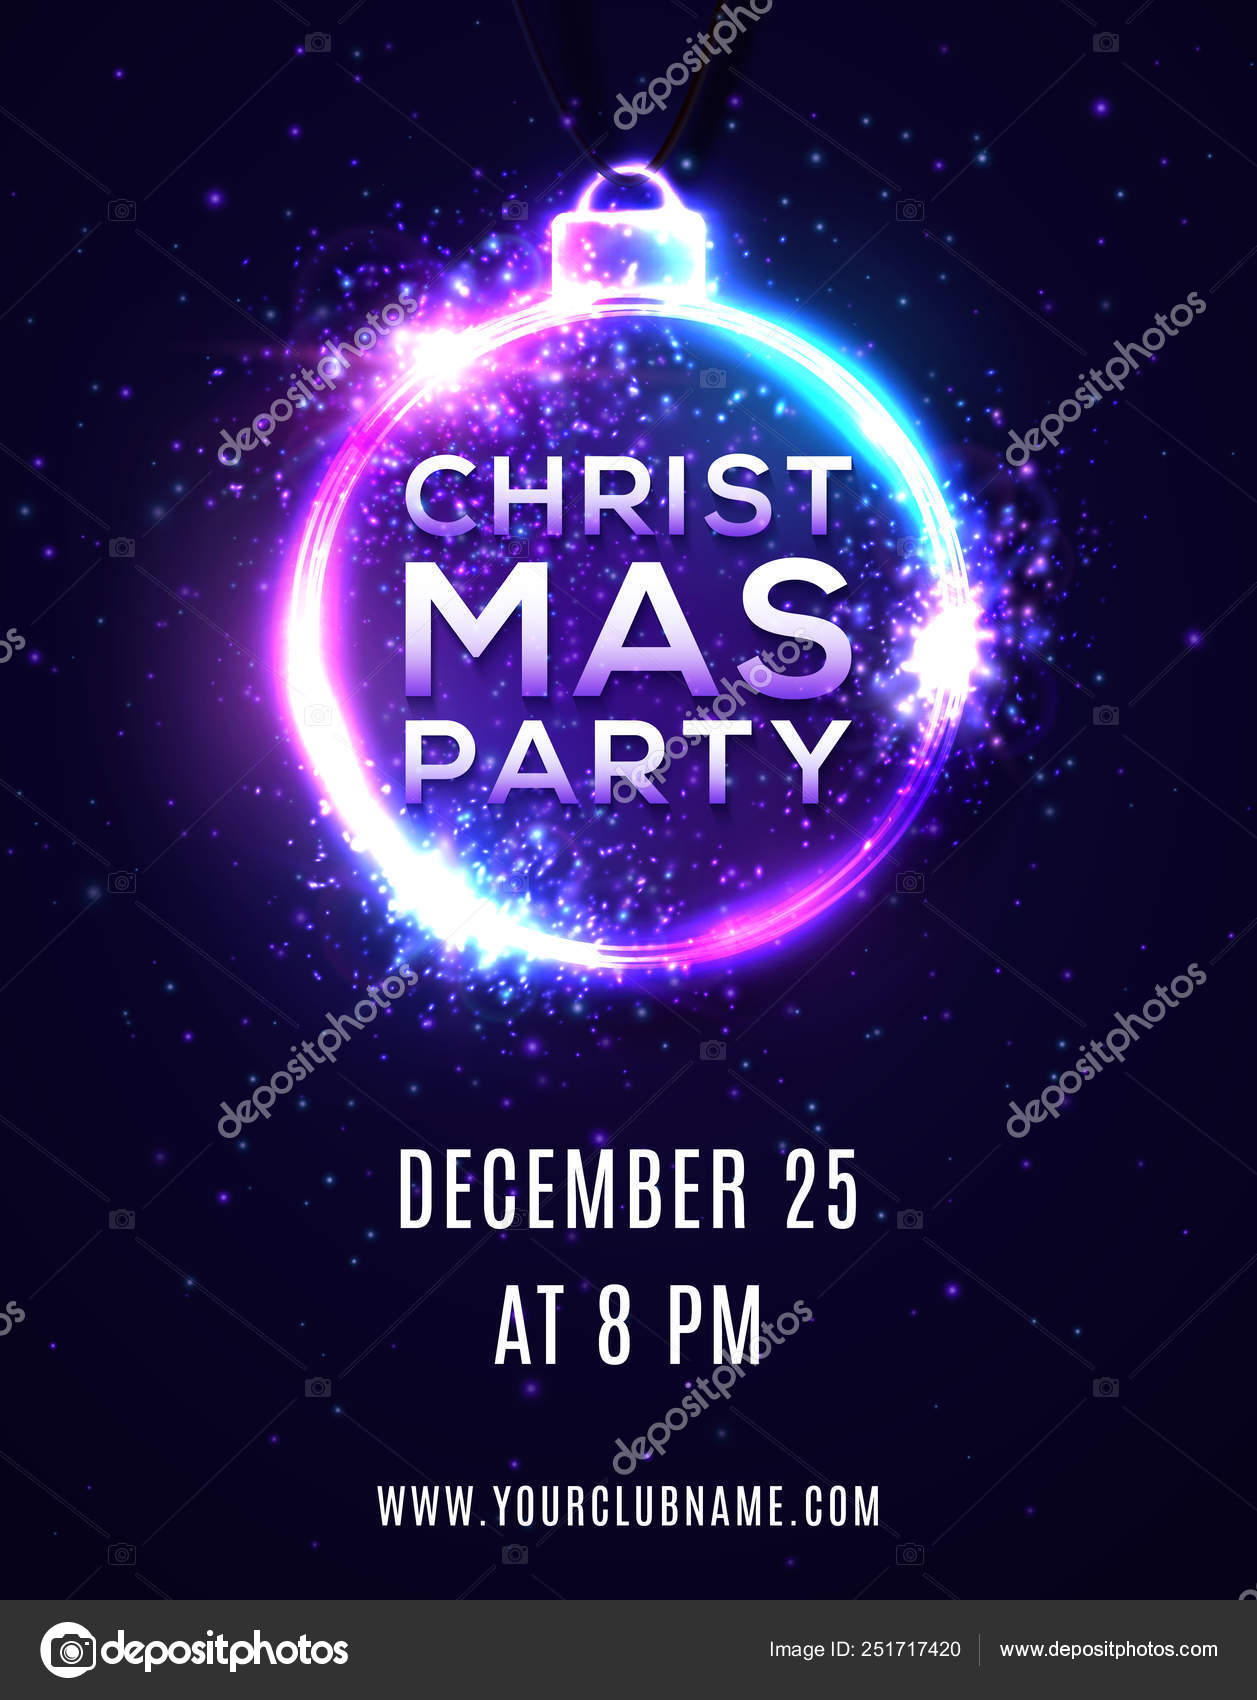 Christmas Party Background Or Poster Template Brochure Flyer Banner Design Xmas Disco Dancing Music Party Invitation In 80s Neon Style With Particles Light Flashes Stars Bright Vector Illustration Stock Vector C